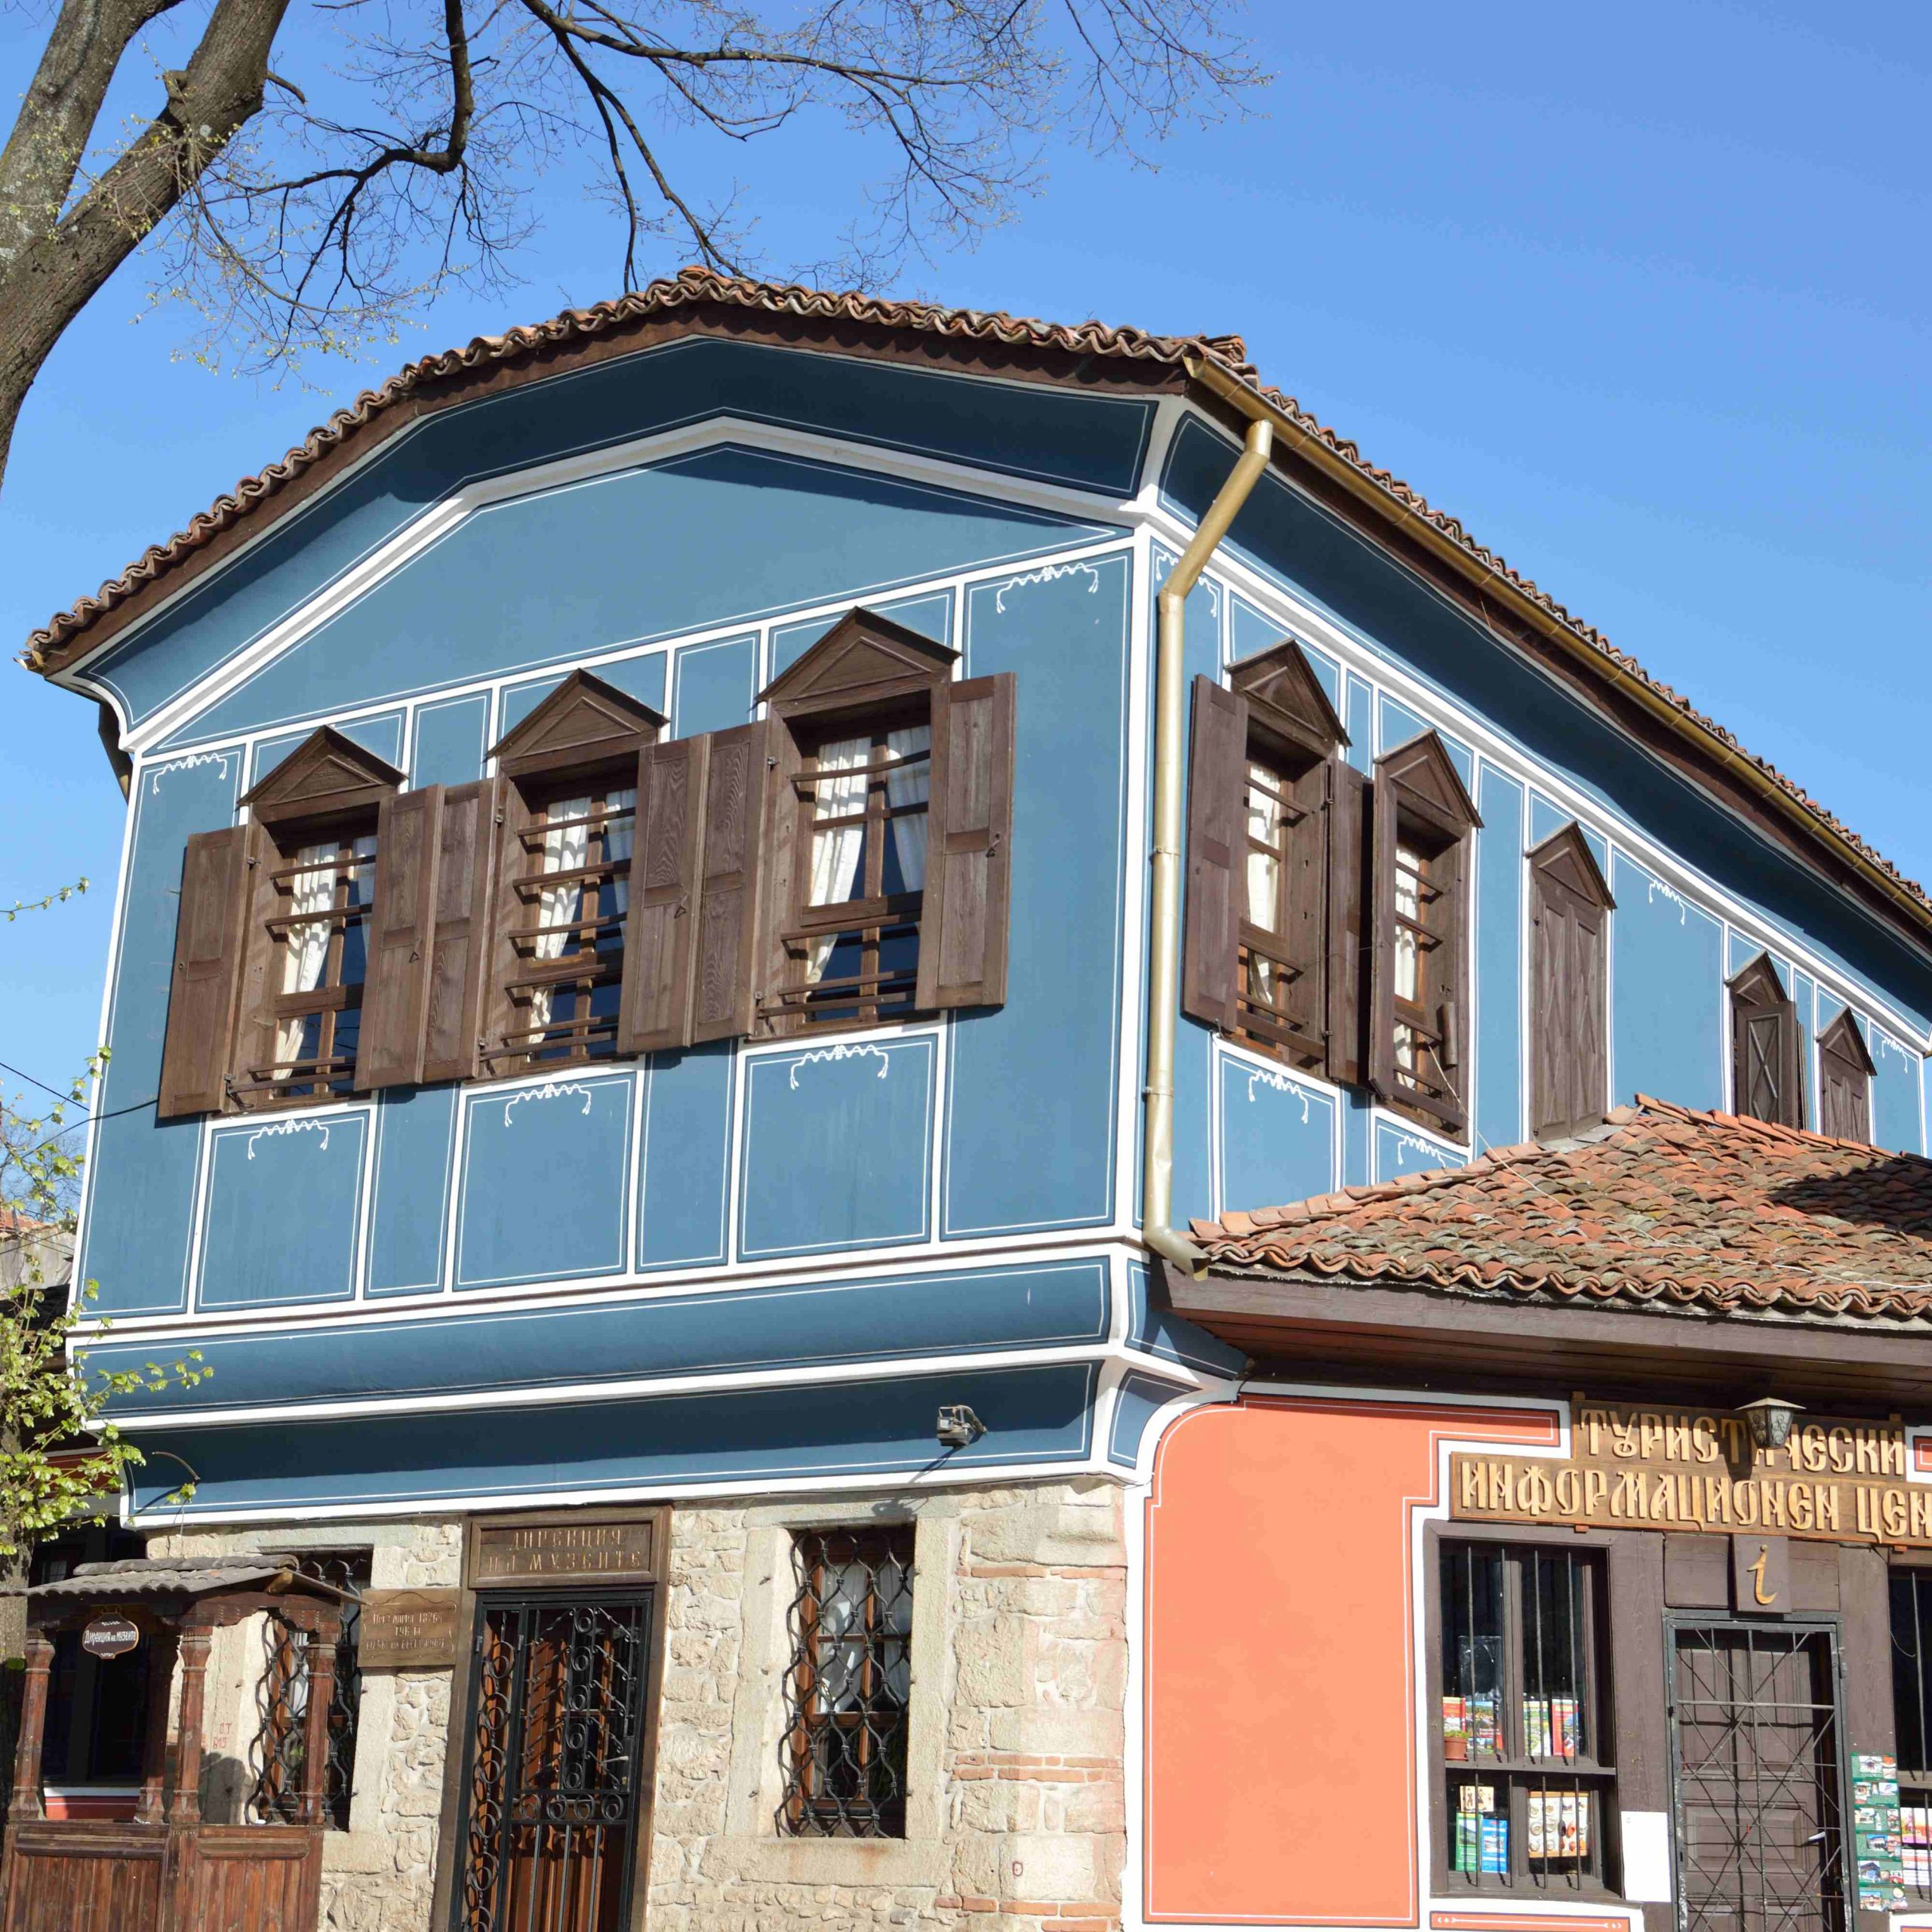 DAY 4: Take photos of the  beautiful architecture and ordinary Bulgarian life in Plovdiv, Koprivshtiza and Sofia